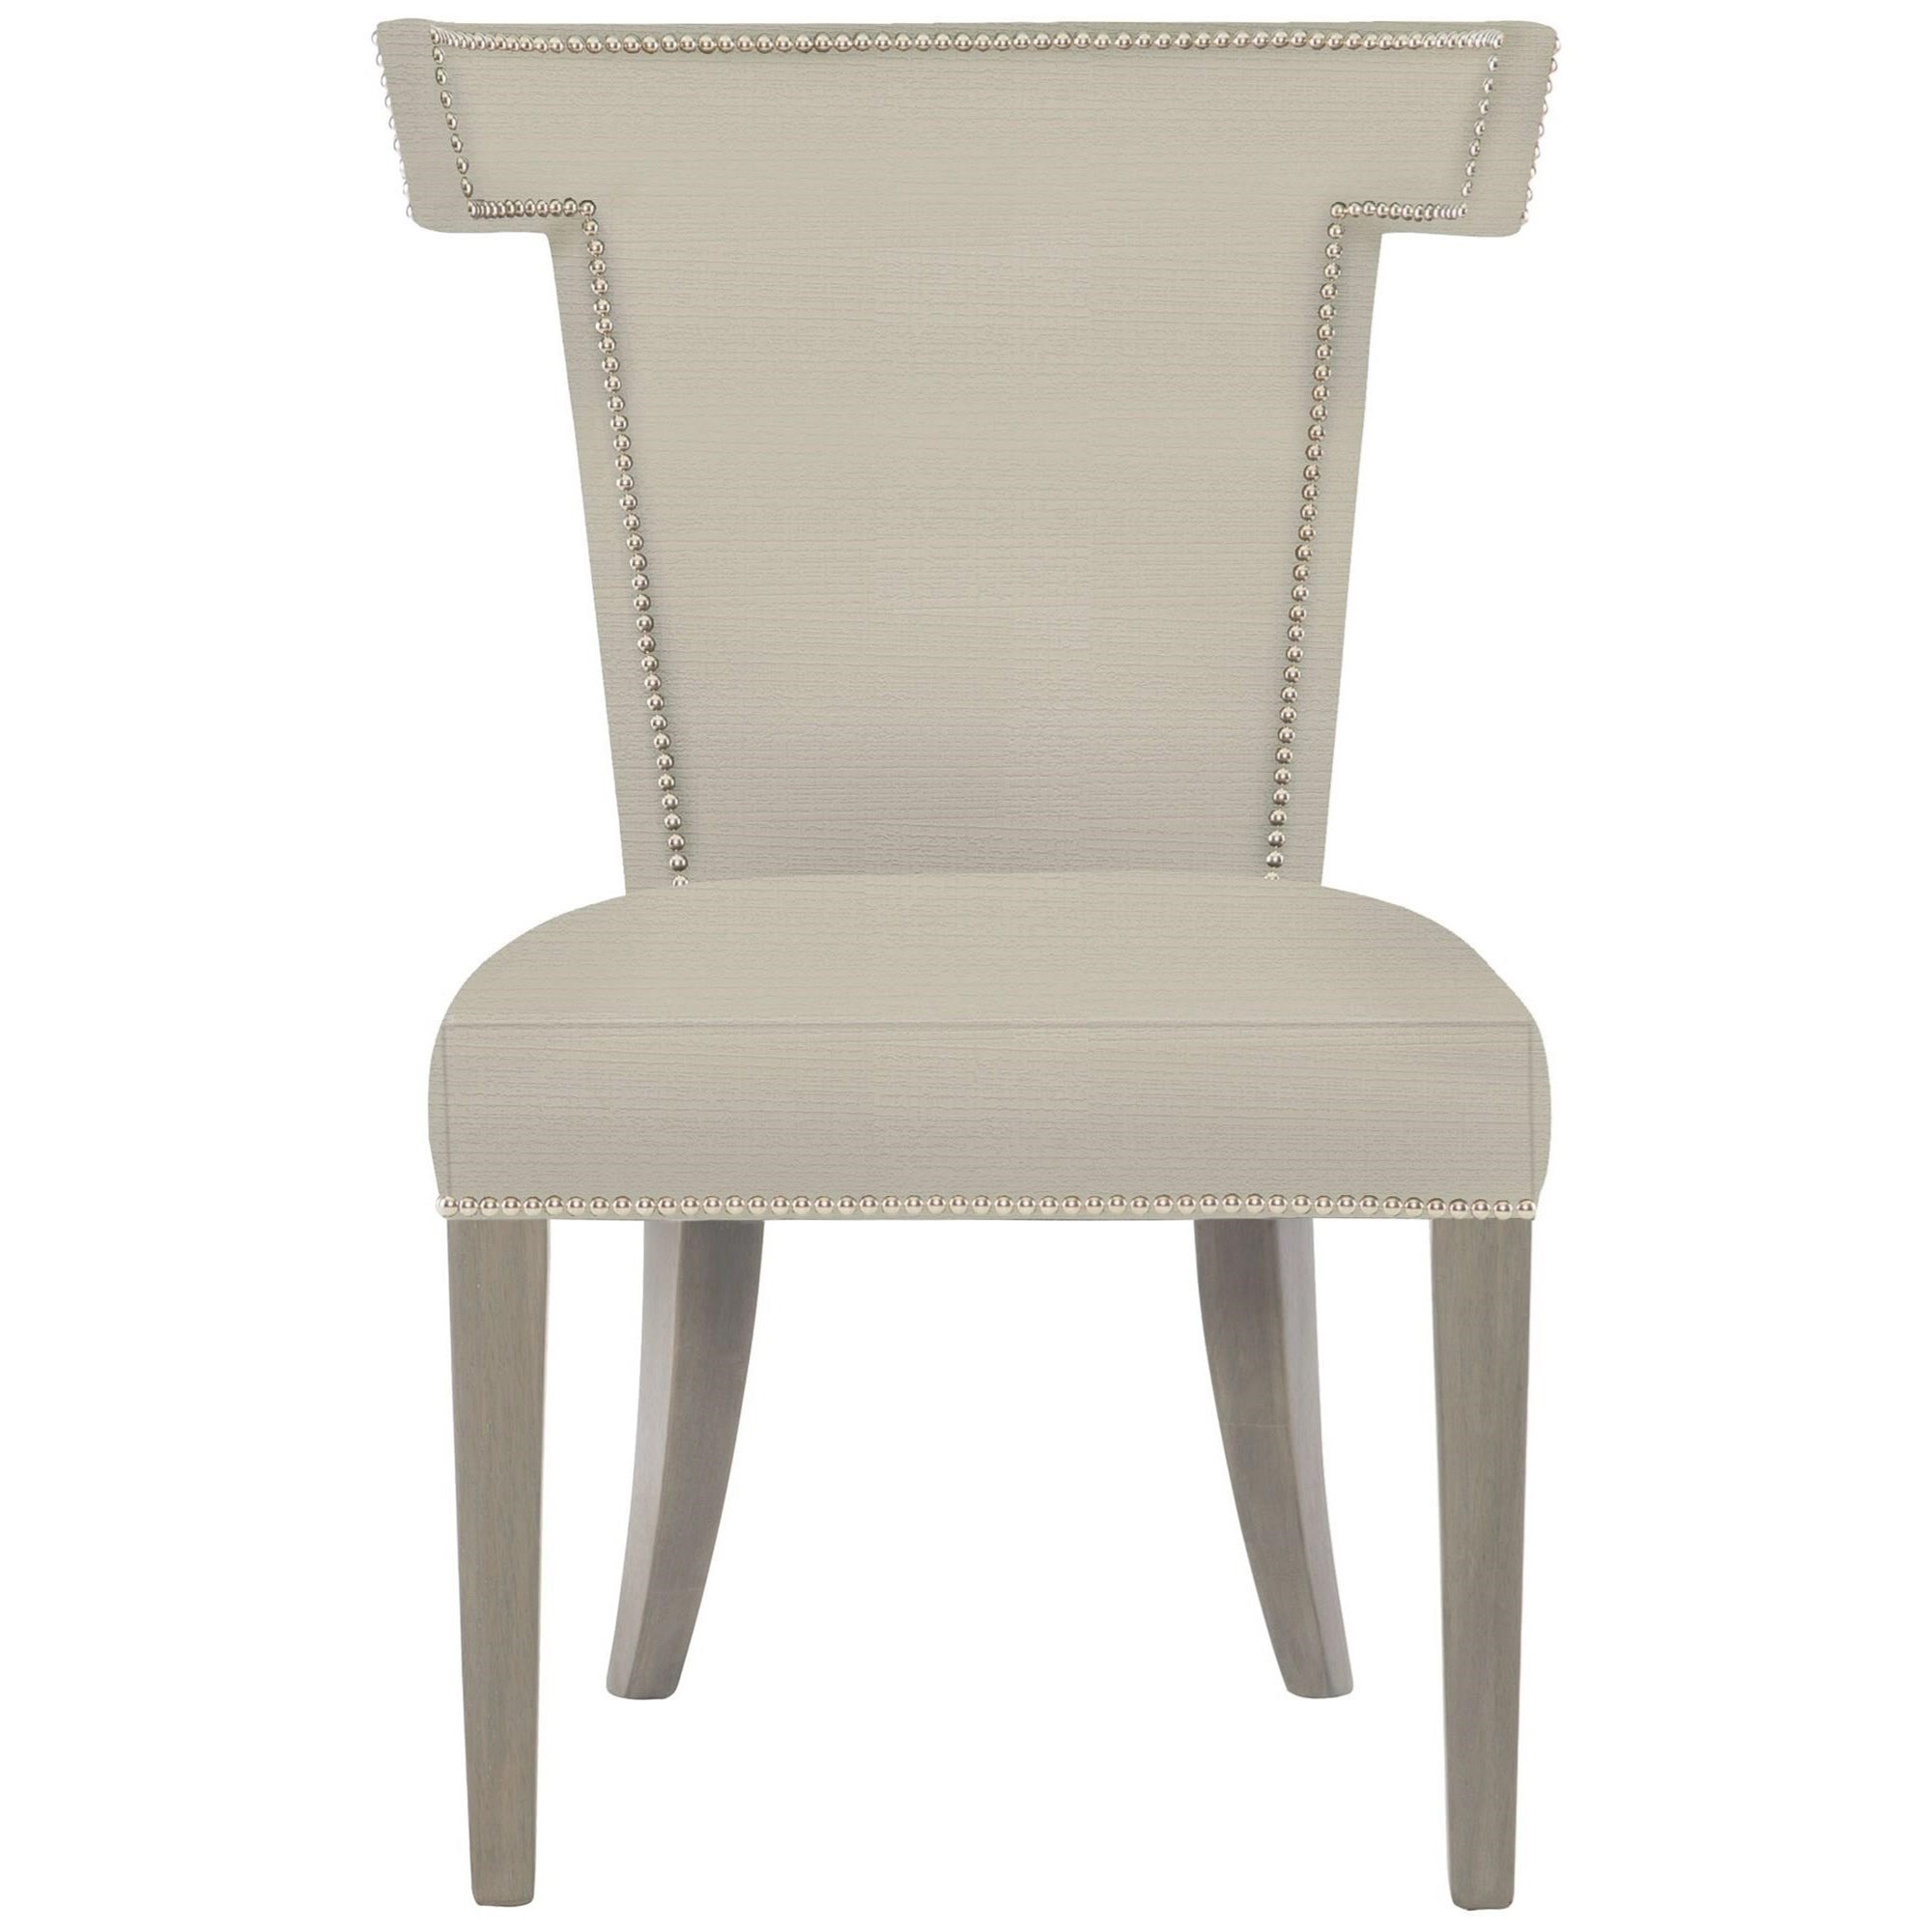 Transitional Dining Side Chair with Nailheads and Greige Wood Finish